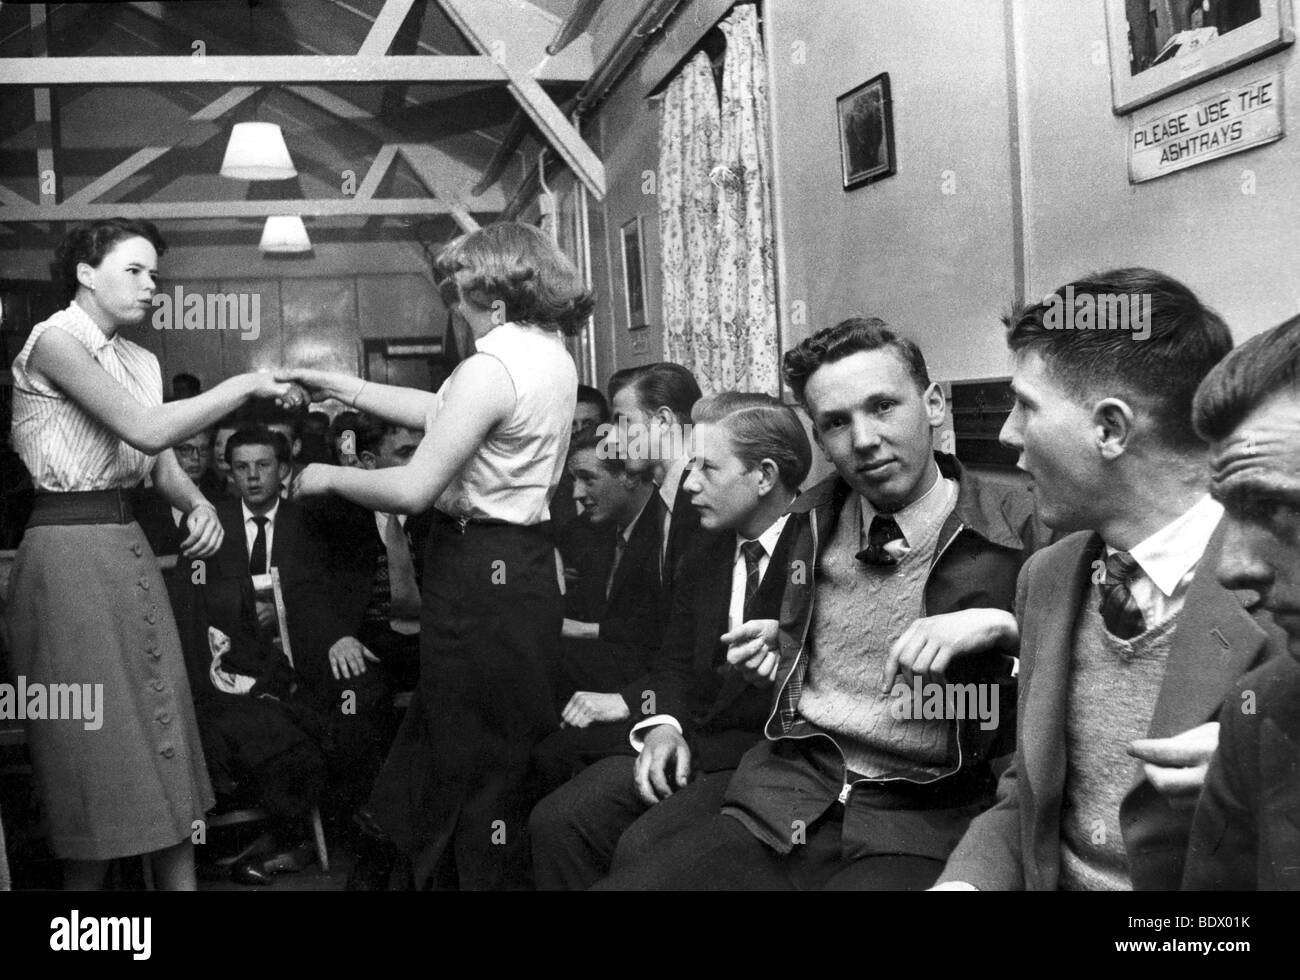 Le sud de Londres teenage dance club en 1957 Photo Stock